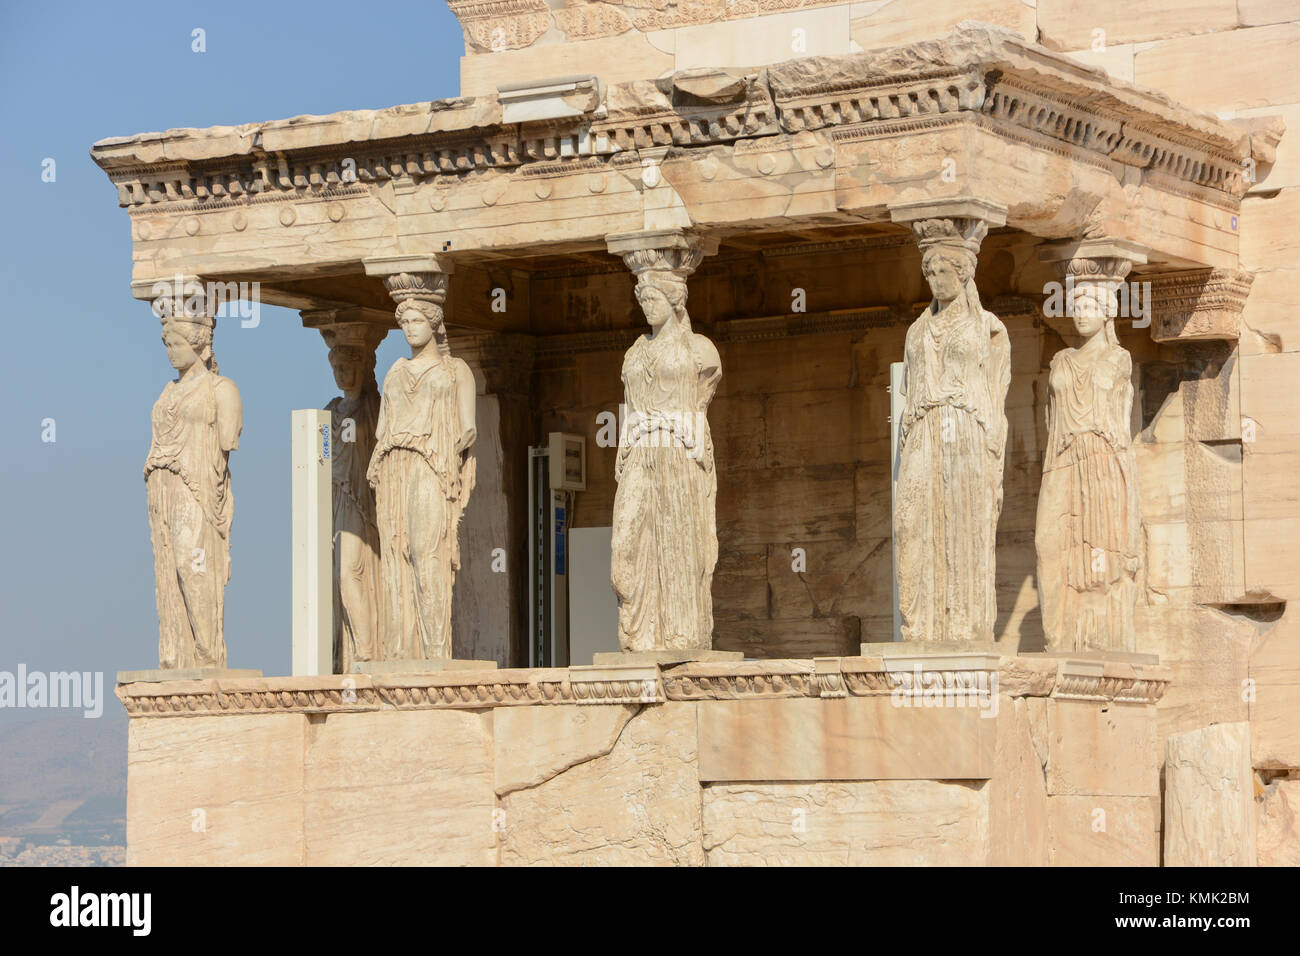 Landscape orientation view of the Erechtheion, Porch of the Maidens/Caryatids, 6 females, at the Acropolis in Athens, - Stock Image